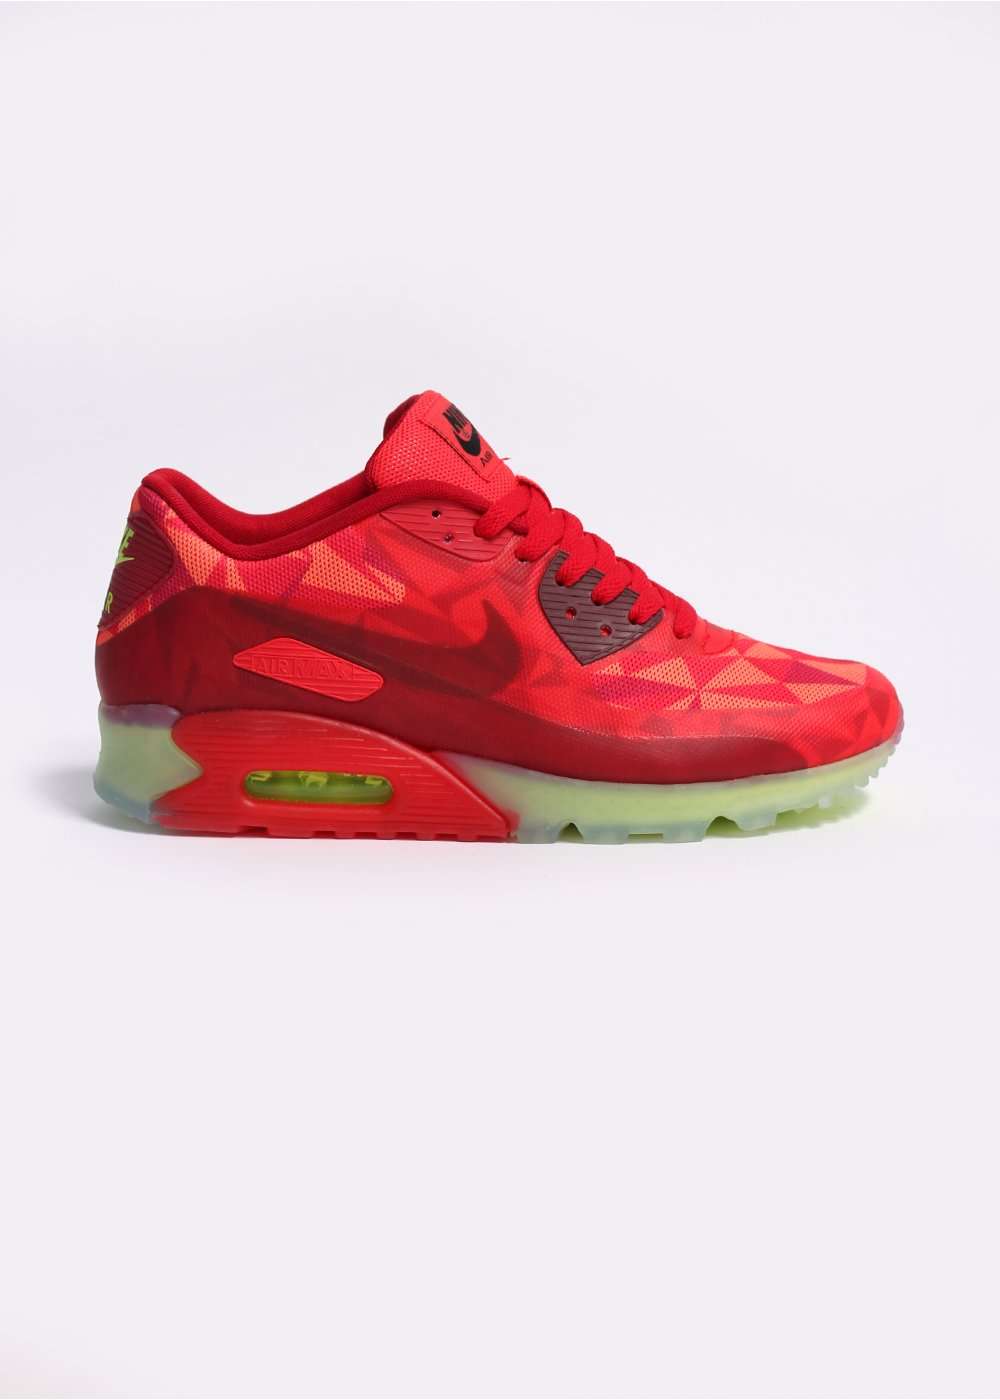 competitive price 5e68b e67f7 Air Max 90  quot Ice Pack quot  Trainers - Gym Red   University Red